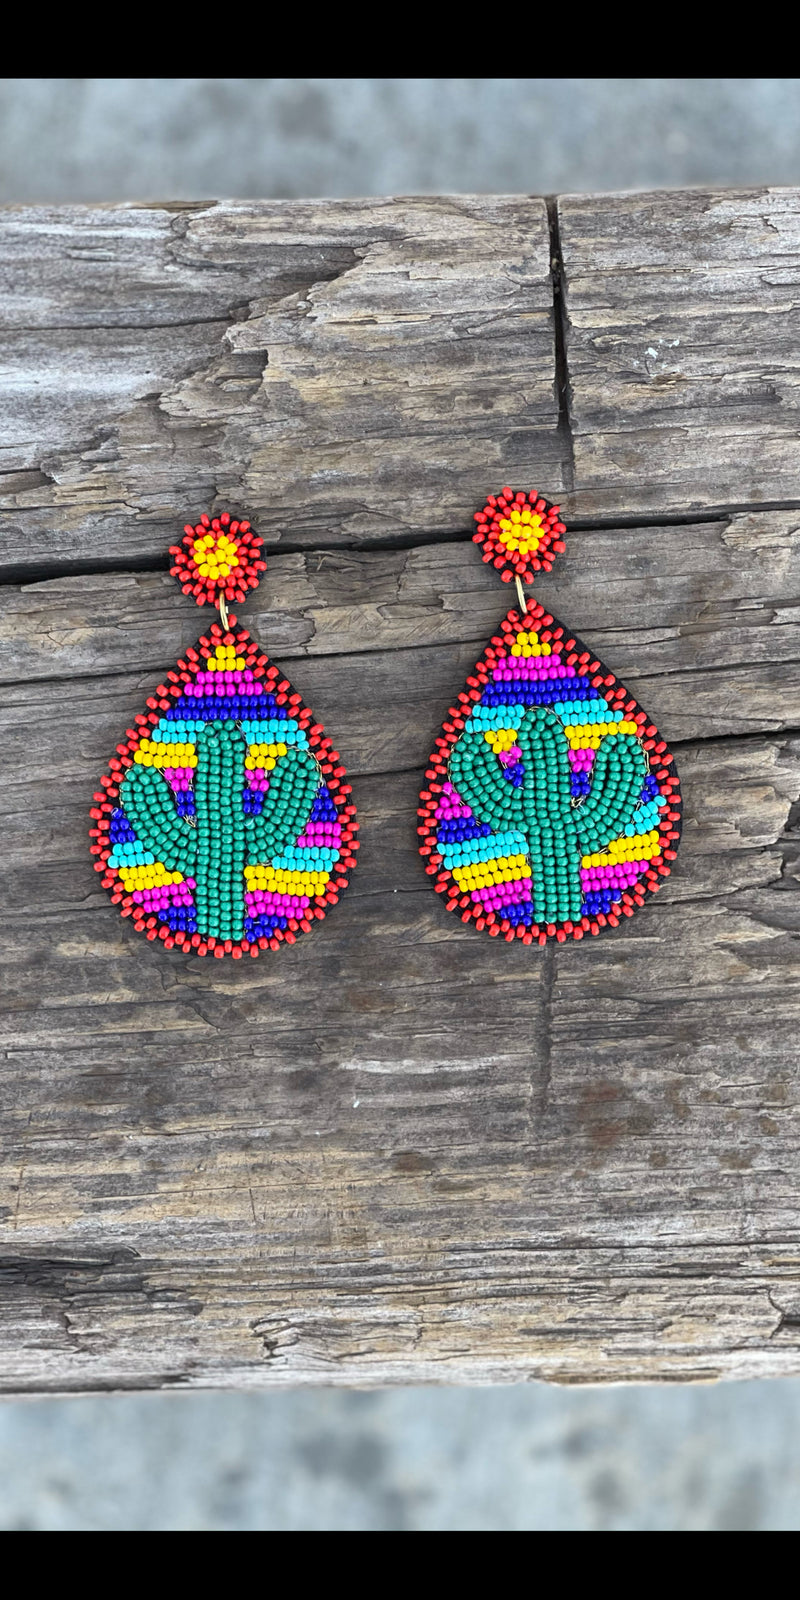 My Kind of Cactus Beaded Earrings